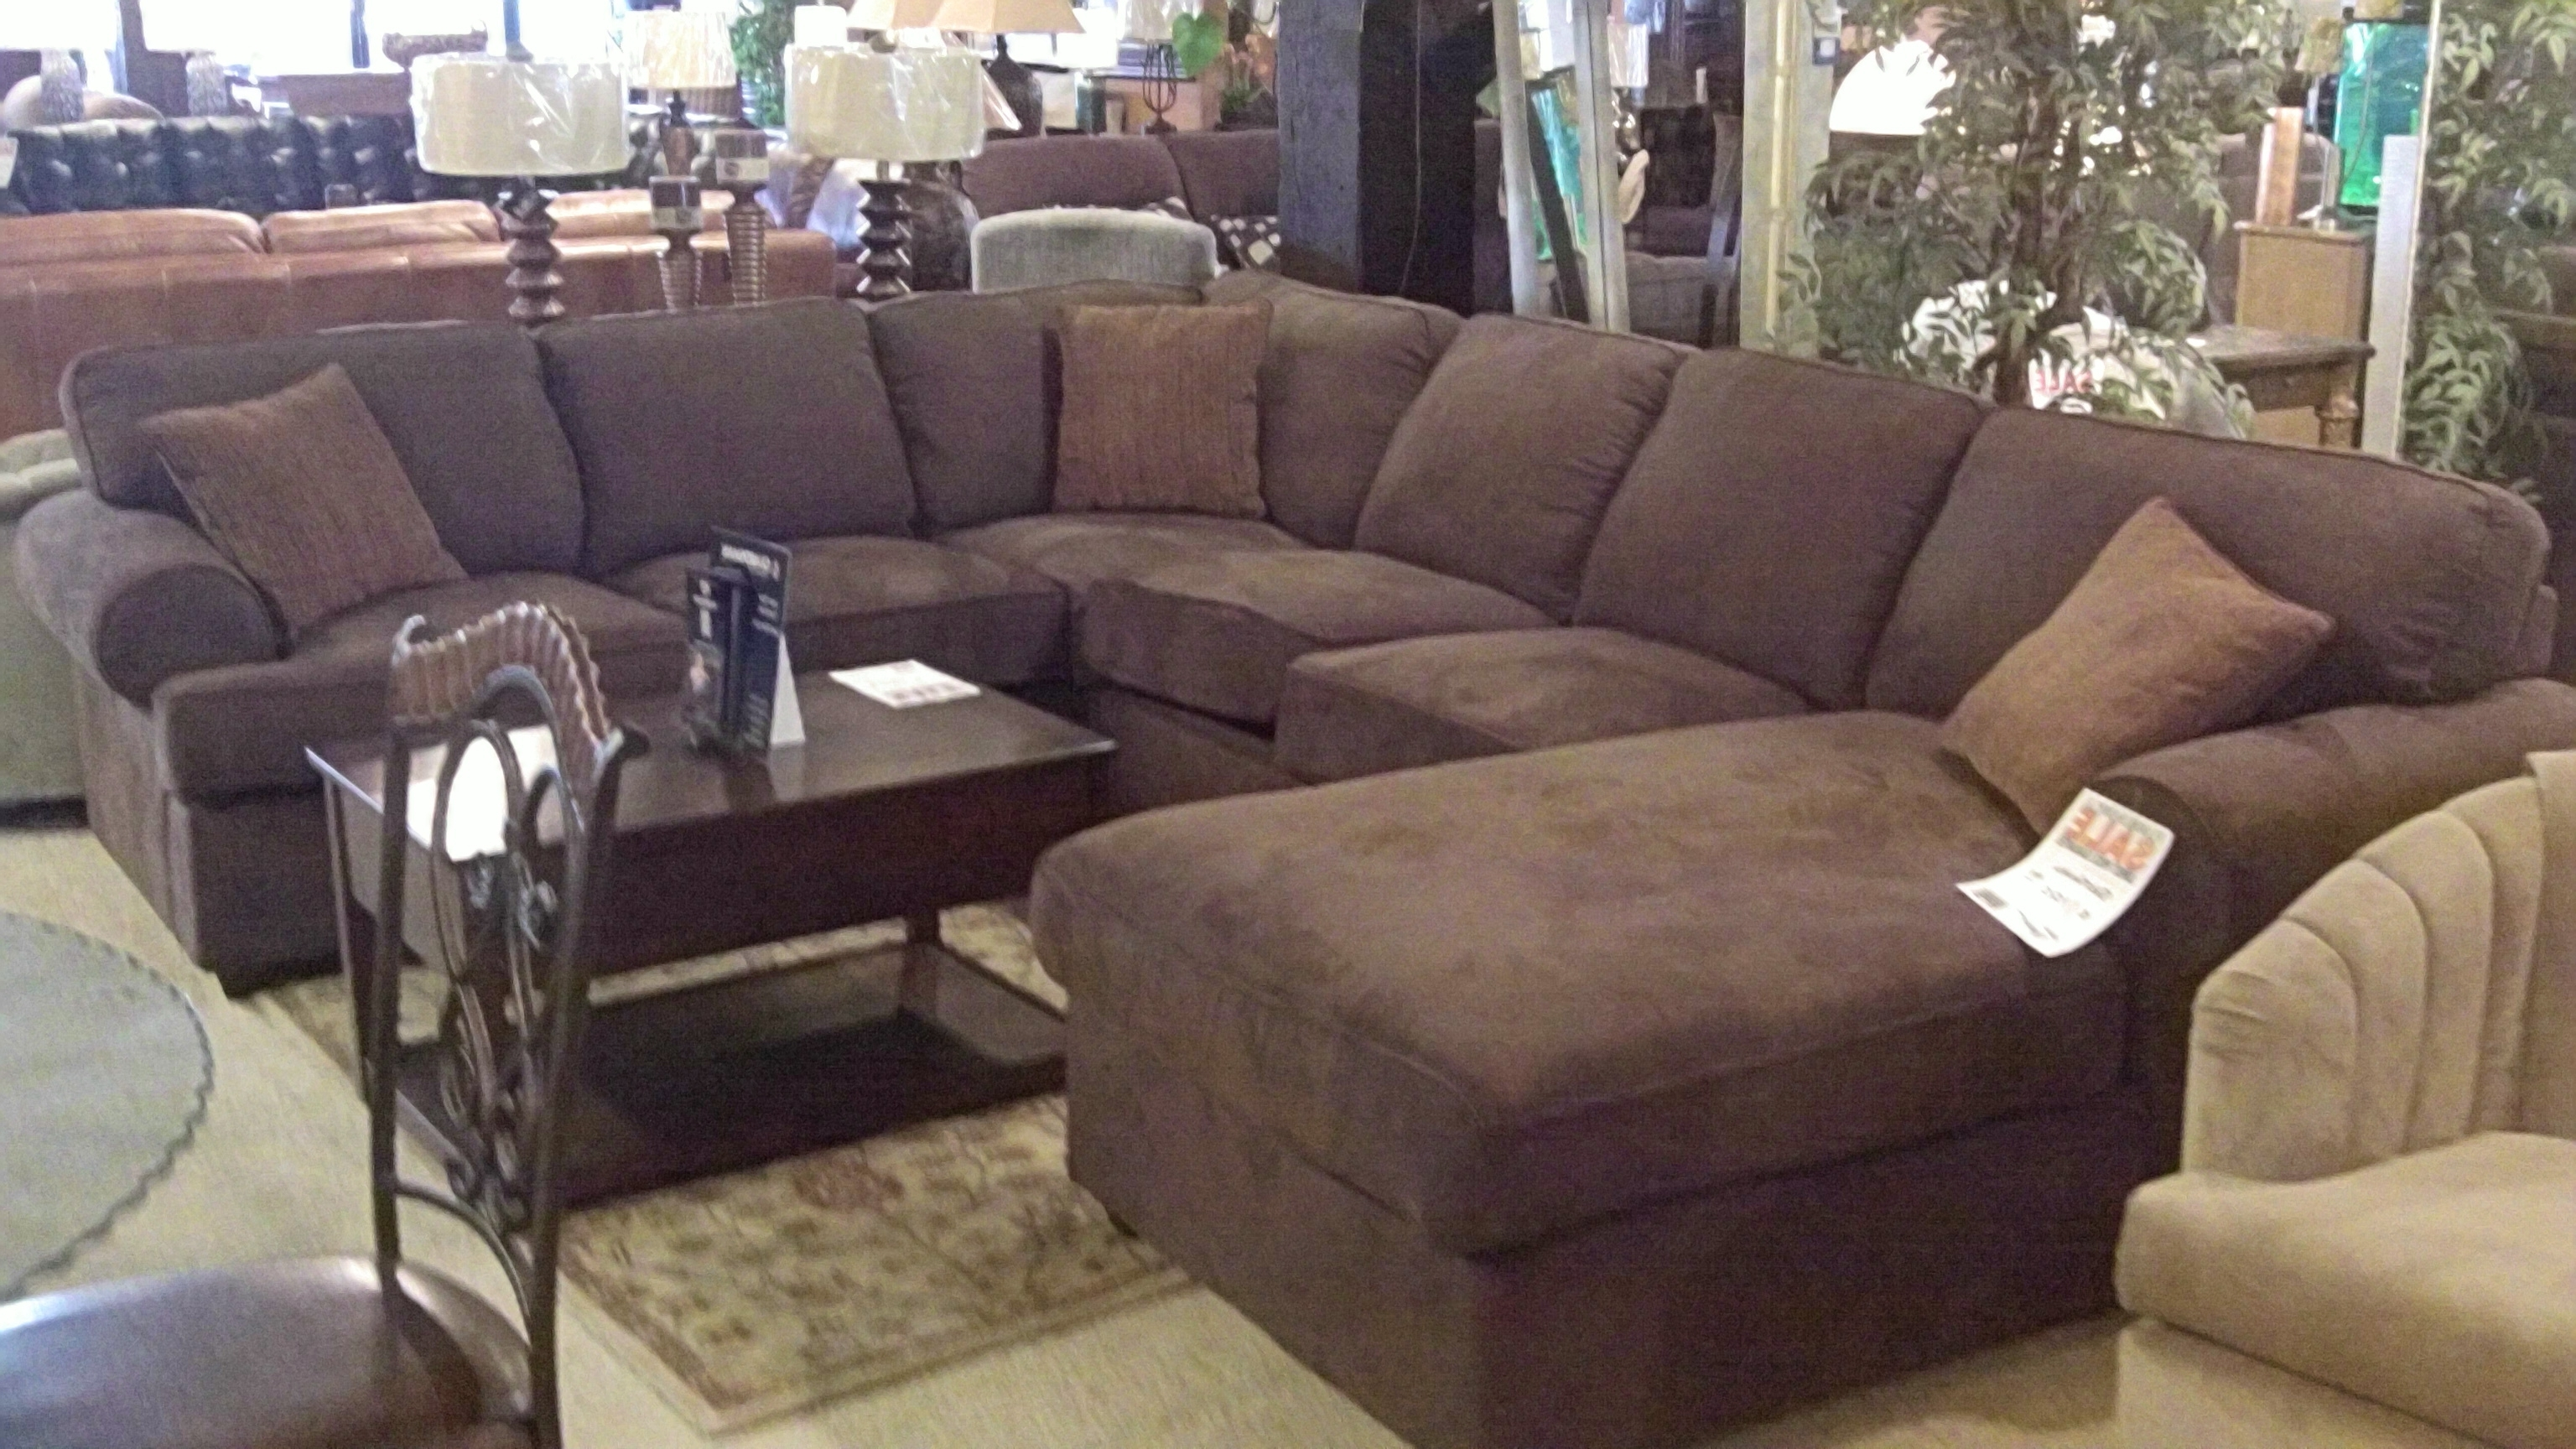 Large Sectionals With Chaise Regarding Best And Newest Leather Sectional Sofa With Chaise Lounge Leather Sectional Sofas (View 7 of 15)